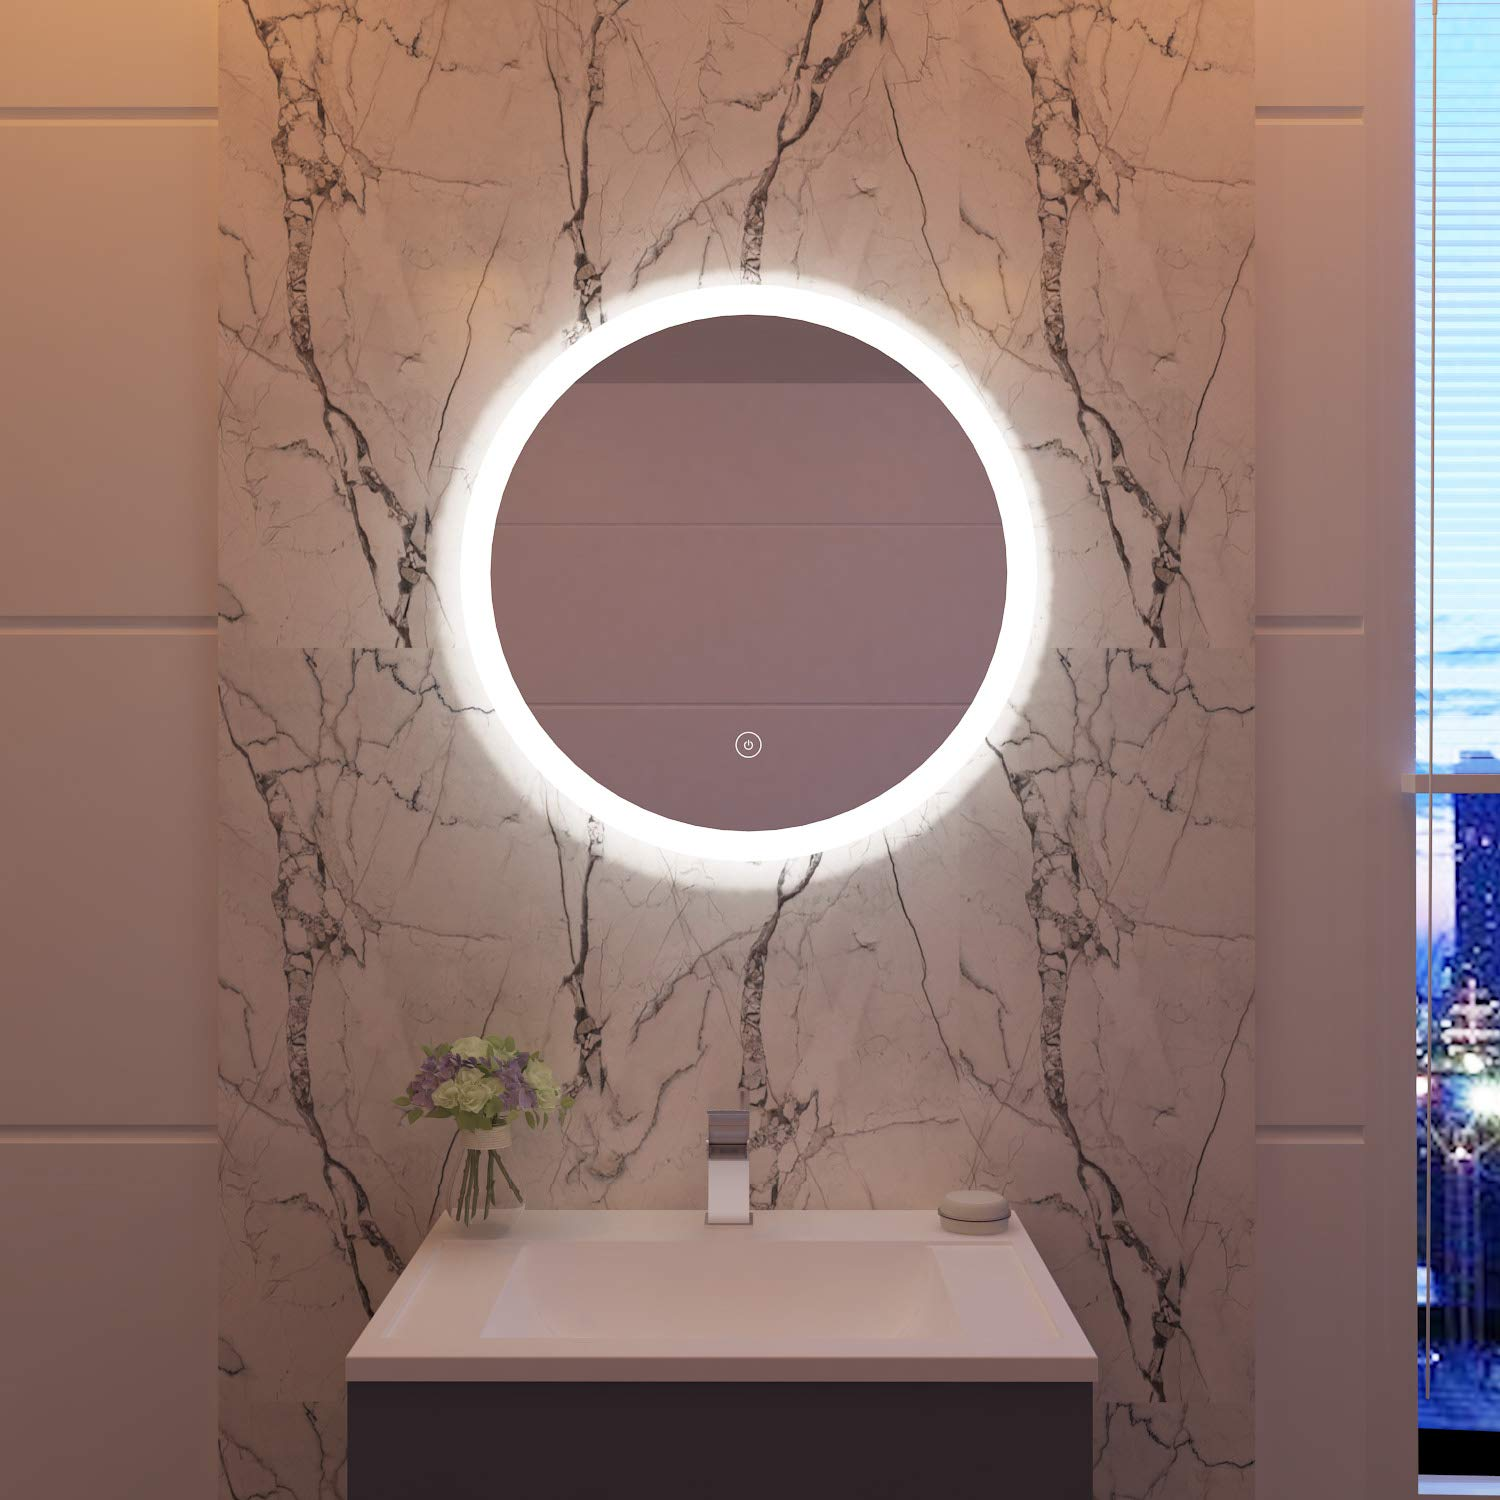 A 600 x 600mm ELEGANT Round Waterproof Illuminated LED Bathroom Mirror Wall Makeup Mirrors with White Light Sensor Touch control and Demister Pad - 600x600mm